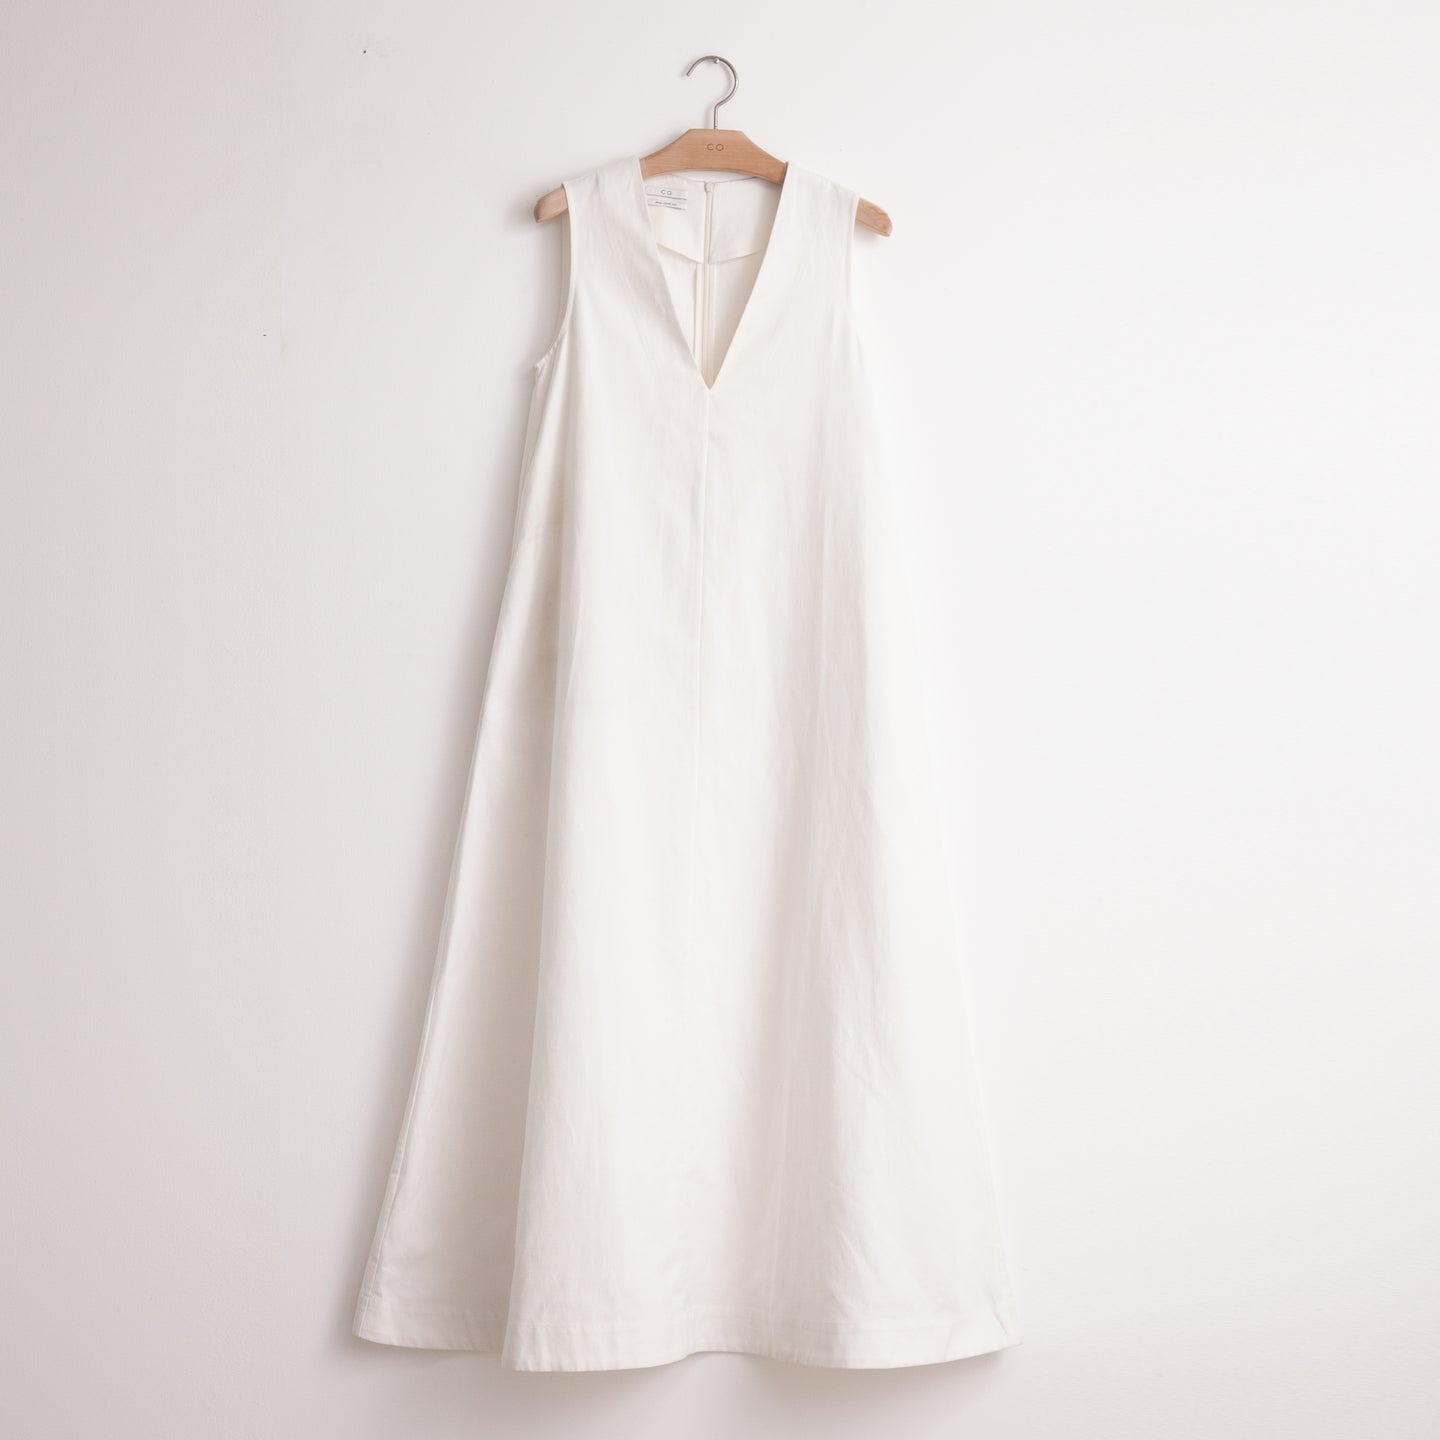 Sleeveless v neck maxi dress in white cotton linen - CO